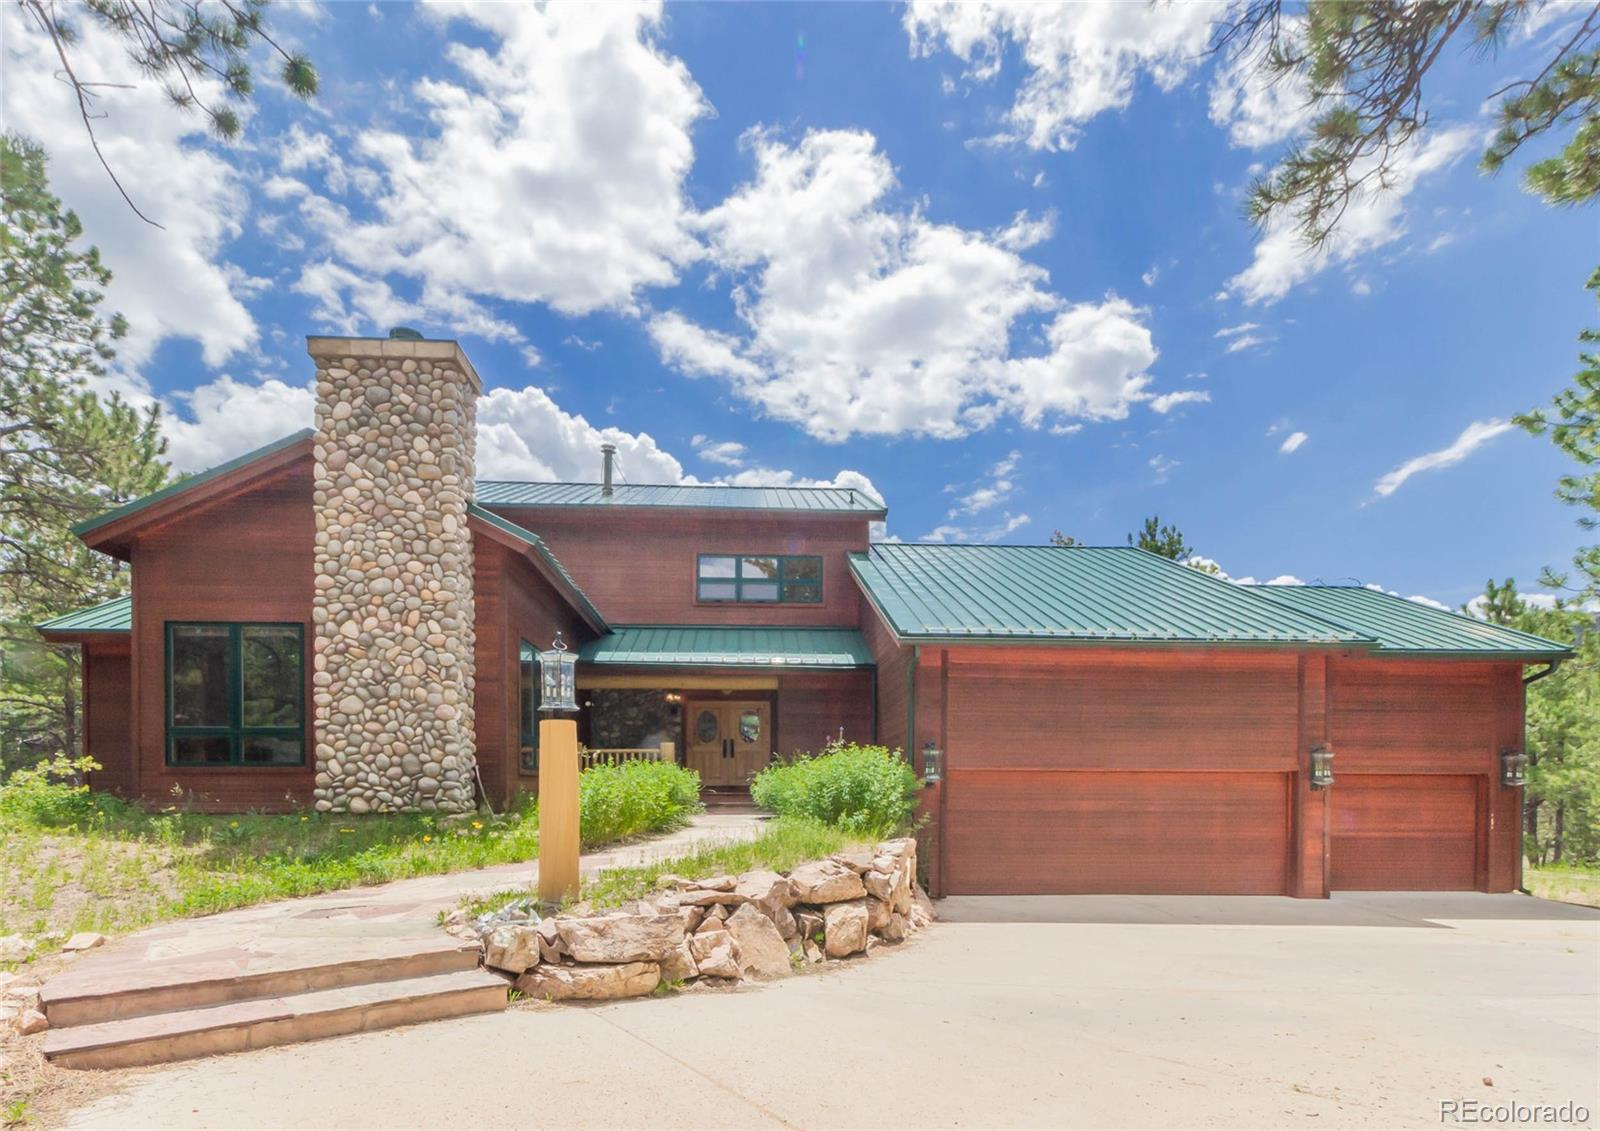 Amazing mountain home on nearly 8 beautiful acres bordering Natl Forest. 6860 sqft custom home is perfect for living the mountain lifestyle, only minutes to 11-Mile Reservoir & Gold Medal waters!Entering the etched glass front doors, jaw drops & eyes draw to beamed TNG cathedral ceiling.Great Room has rock fp/hearth & wall of windows with 3 sets French doors walkout to huge wrap deck & massive screened-in Porch!Kitchen with center island prep sink, built-in wine rack, wood floors/cabinetry, & Dining area! Main level Master is spacious with vaulted ceilings, private fireplace&adj Bath.Up full-log stairs,find built-in bookshelves,Office, 900 sq ft Family Rm,& 2nd Master Suite with sitting area and adj Bath!Downstairs 2 Bedrooms each with priv entr, seating,&en-suite vanity.Lower has Laundry, Full Bath,& tiled Steam Rm! Direct access to Pike Natl Forest, easy access to county road all year. This is a unique custom home with many special amenities…don't let this opportunity pass you by!